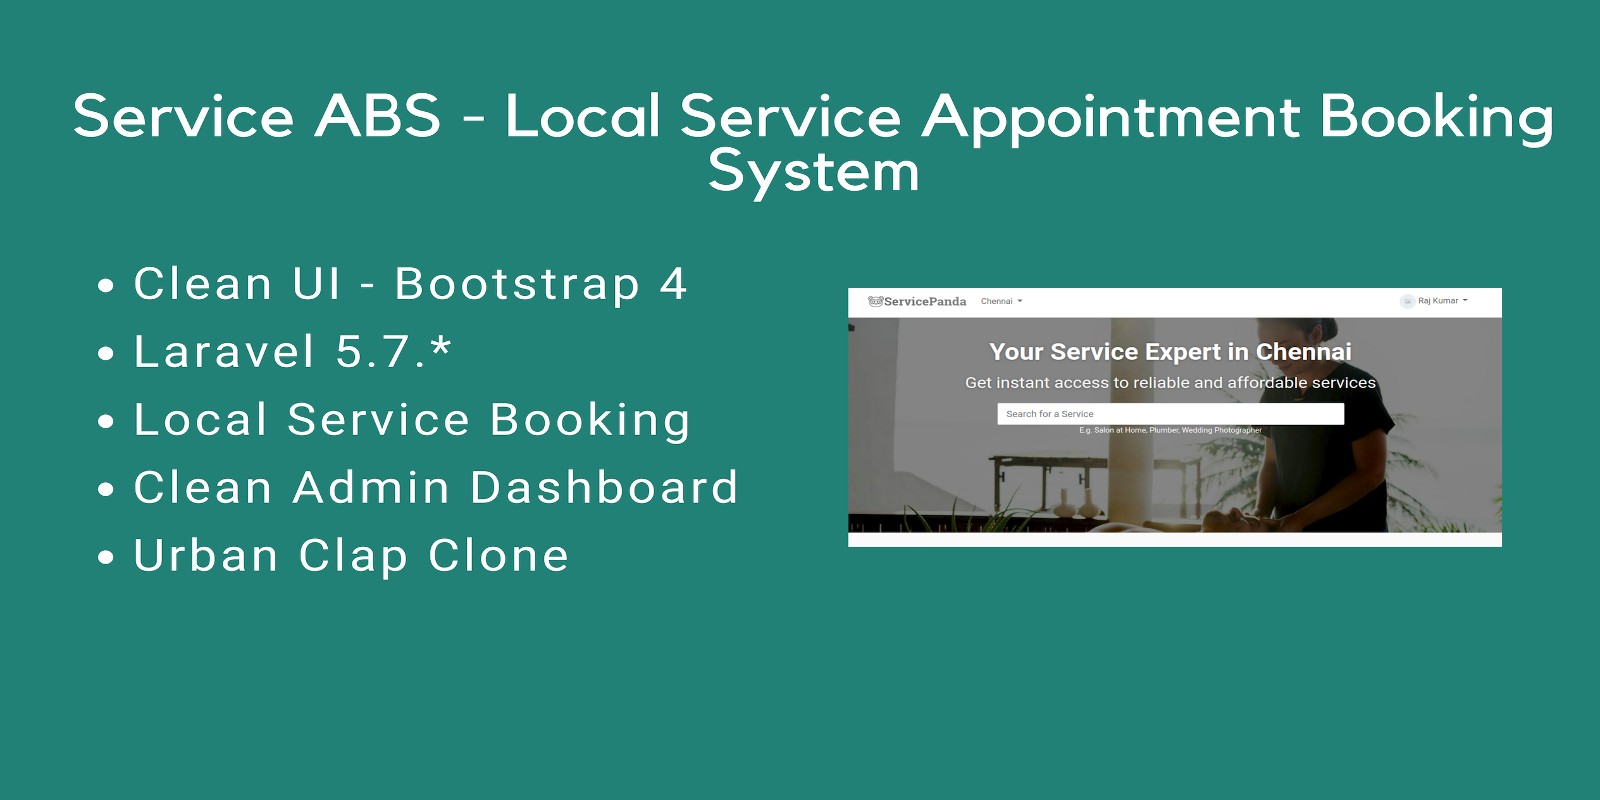 Service ABS - Service Appointment Booking System